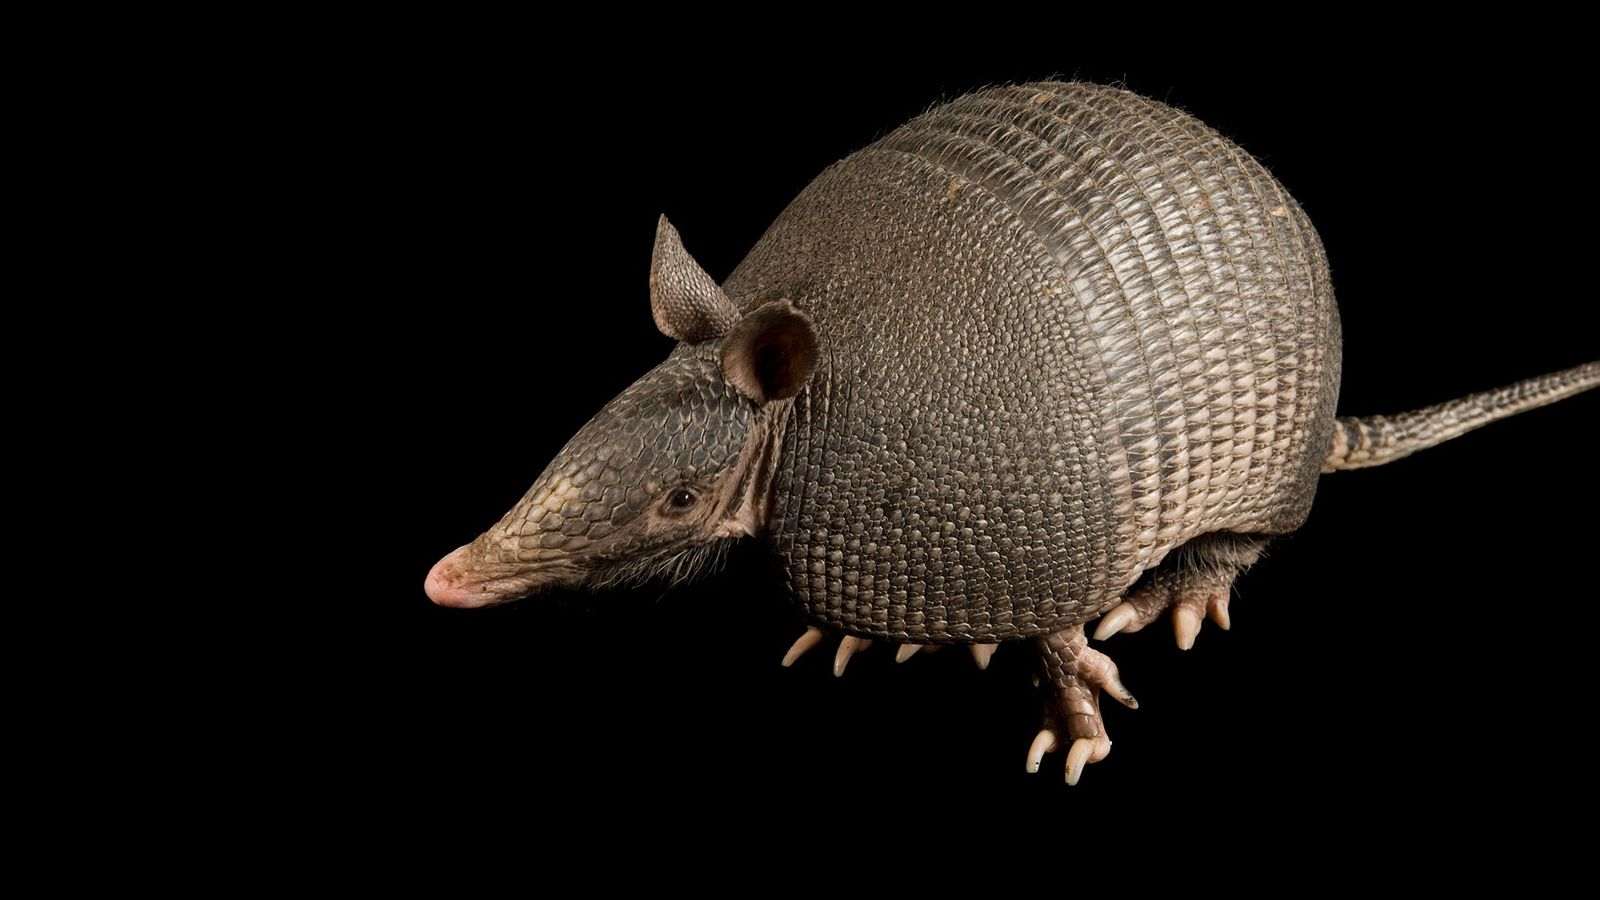 The majority of nine-banded armadillos (like the one shown here) in Brazil's western state of Pará ...